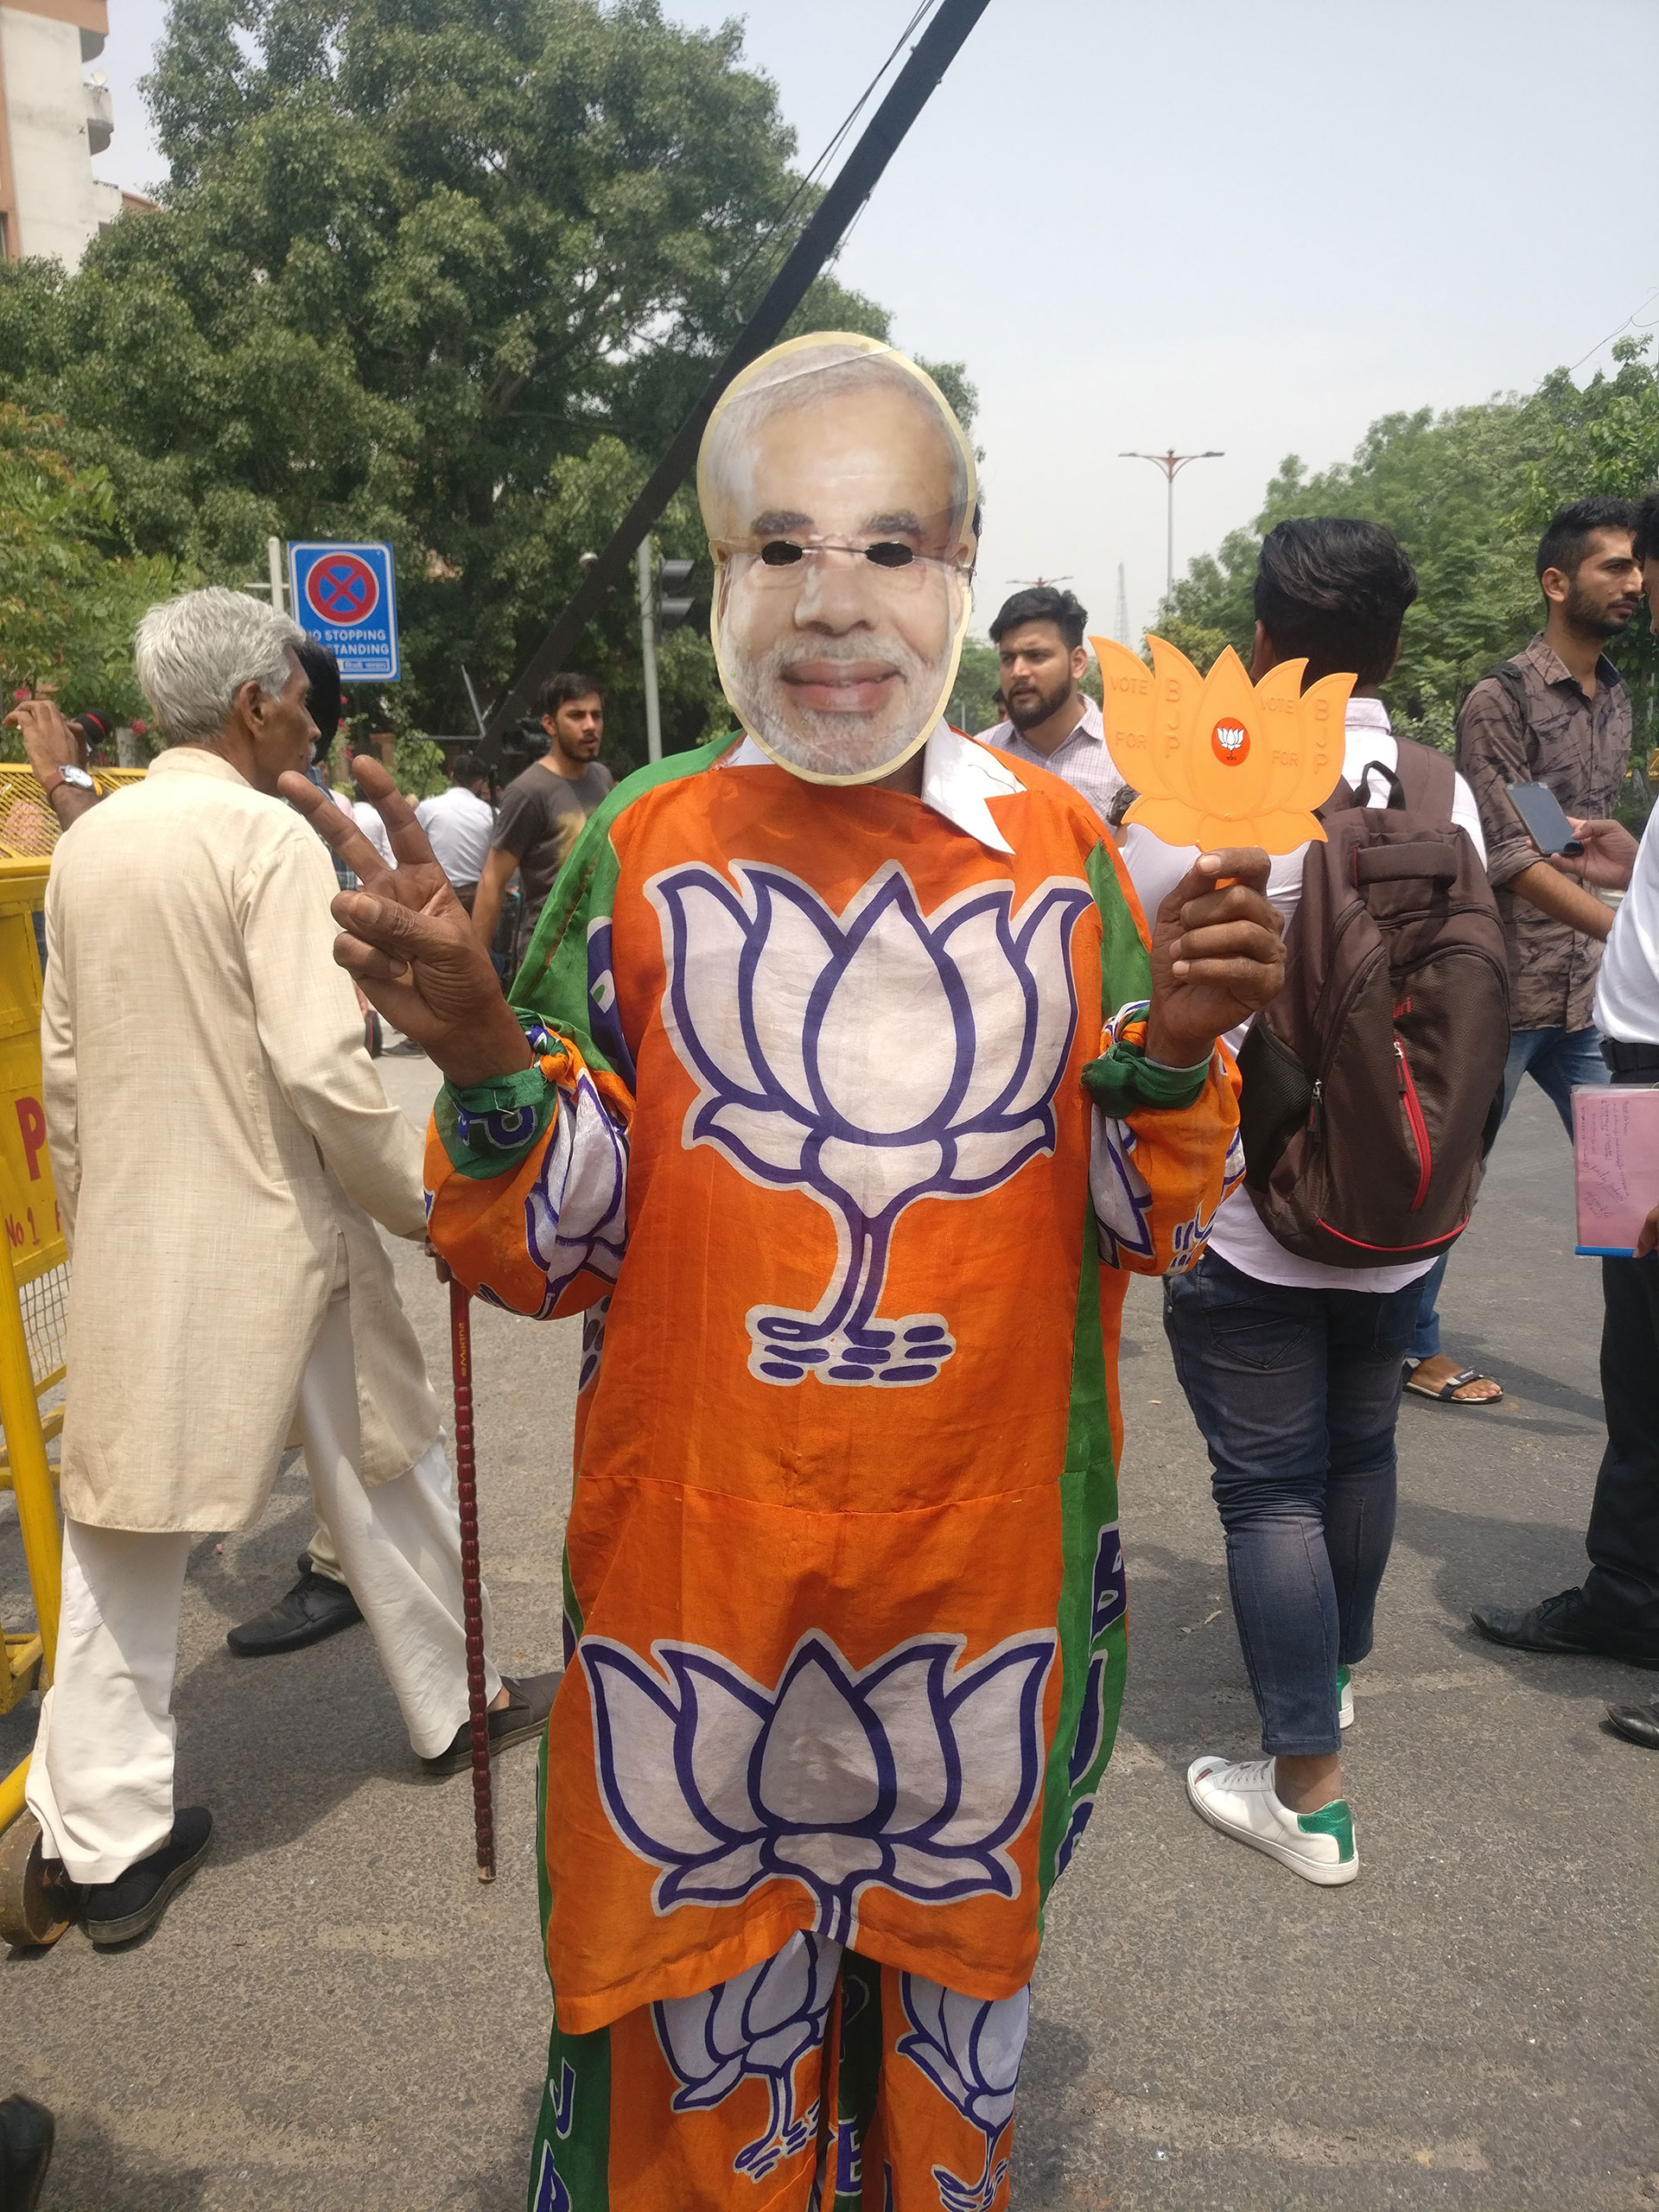 BJP supporter dressed up as Modi for counting day. — (Photo by Manon Verchot/GroundTruth)